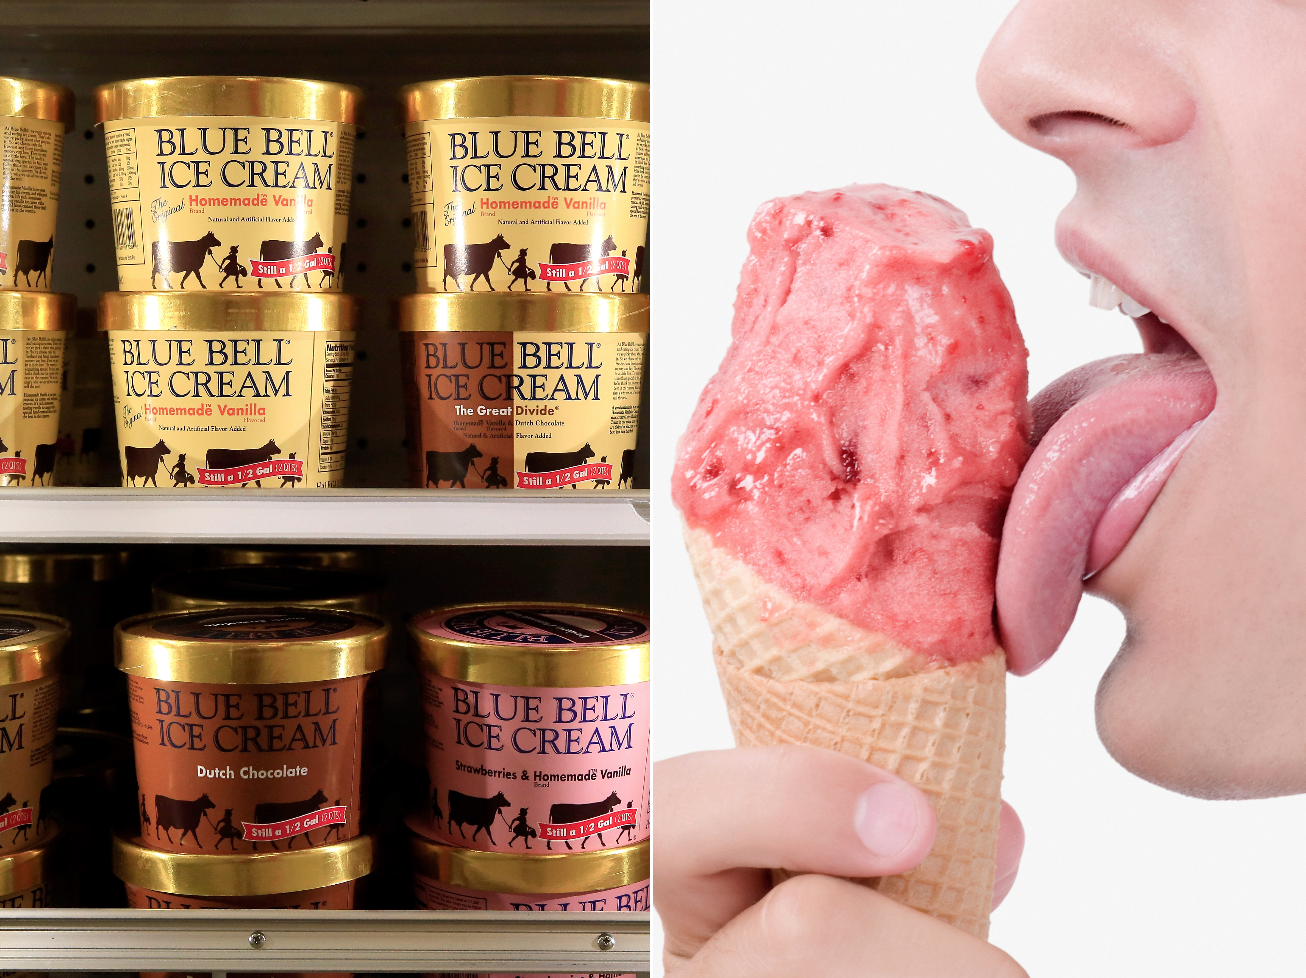 PSA: Licking Ice Cream In Walmart Could Get You 20 Years in Prison